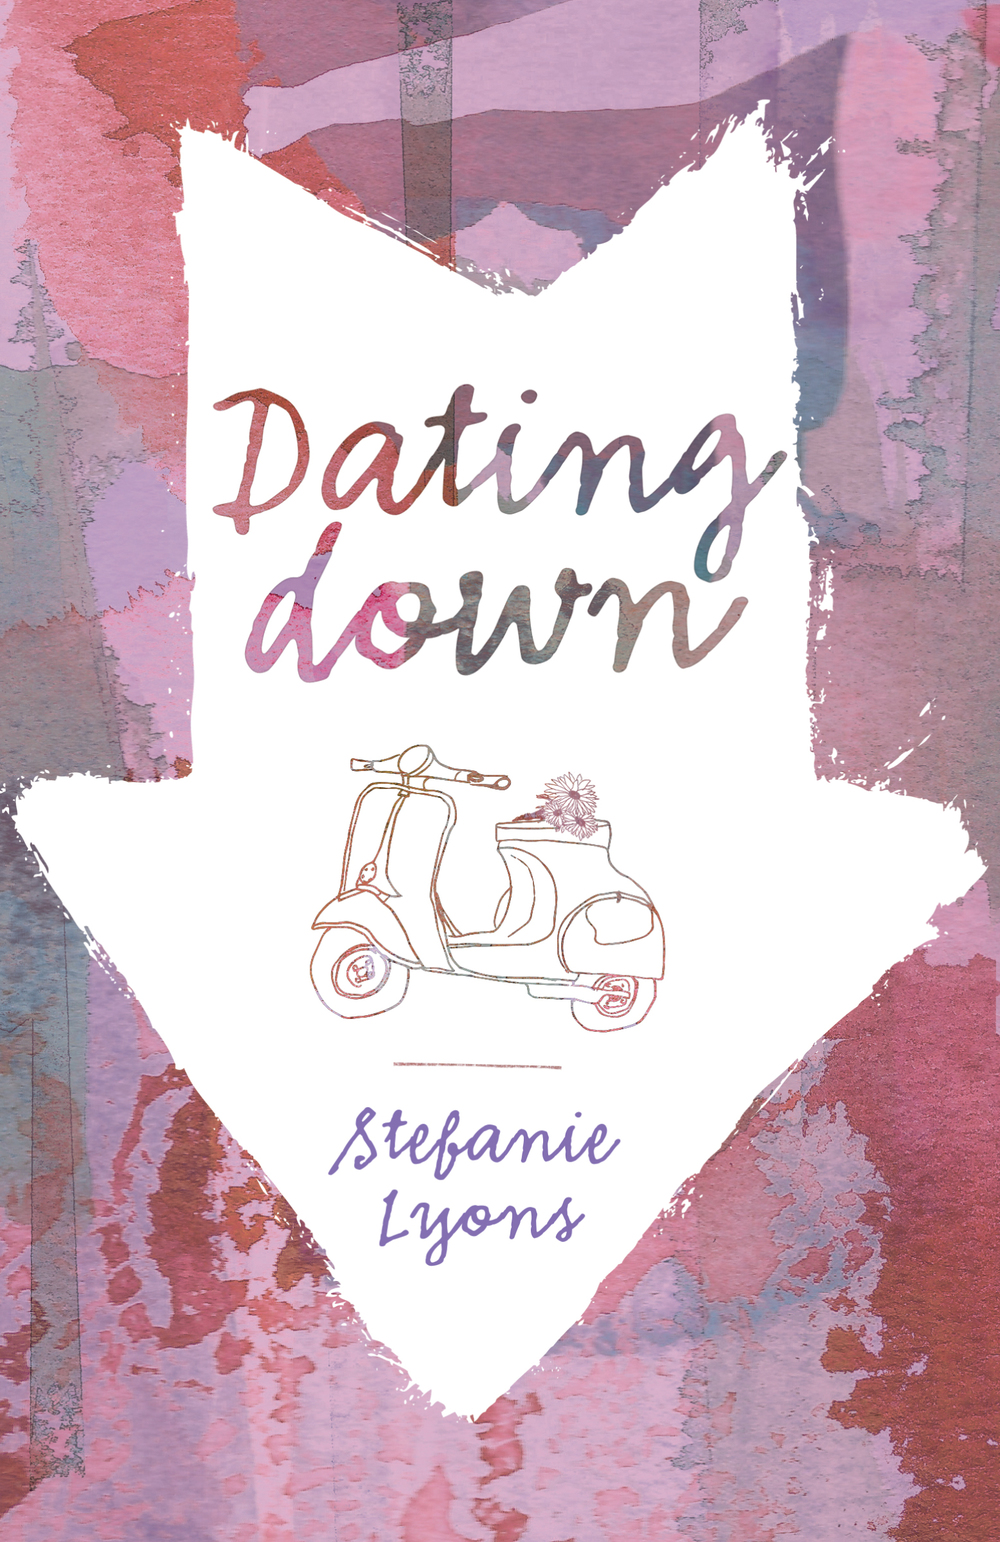 Dating Down  will be released April 8, 2015.